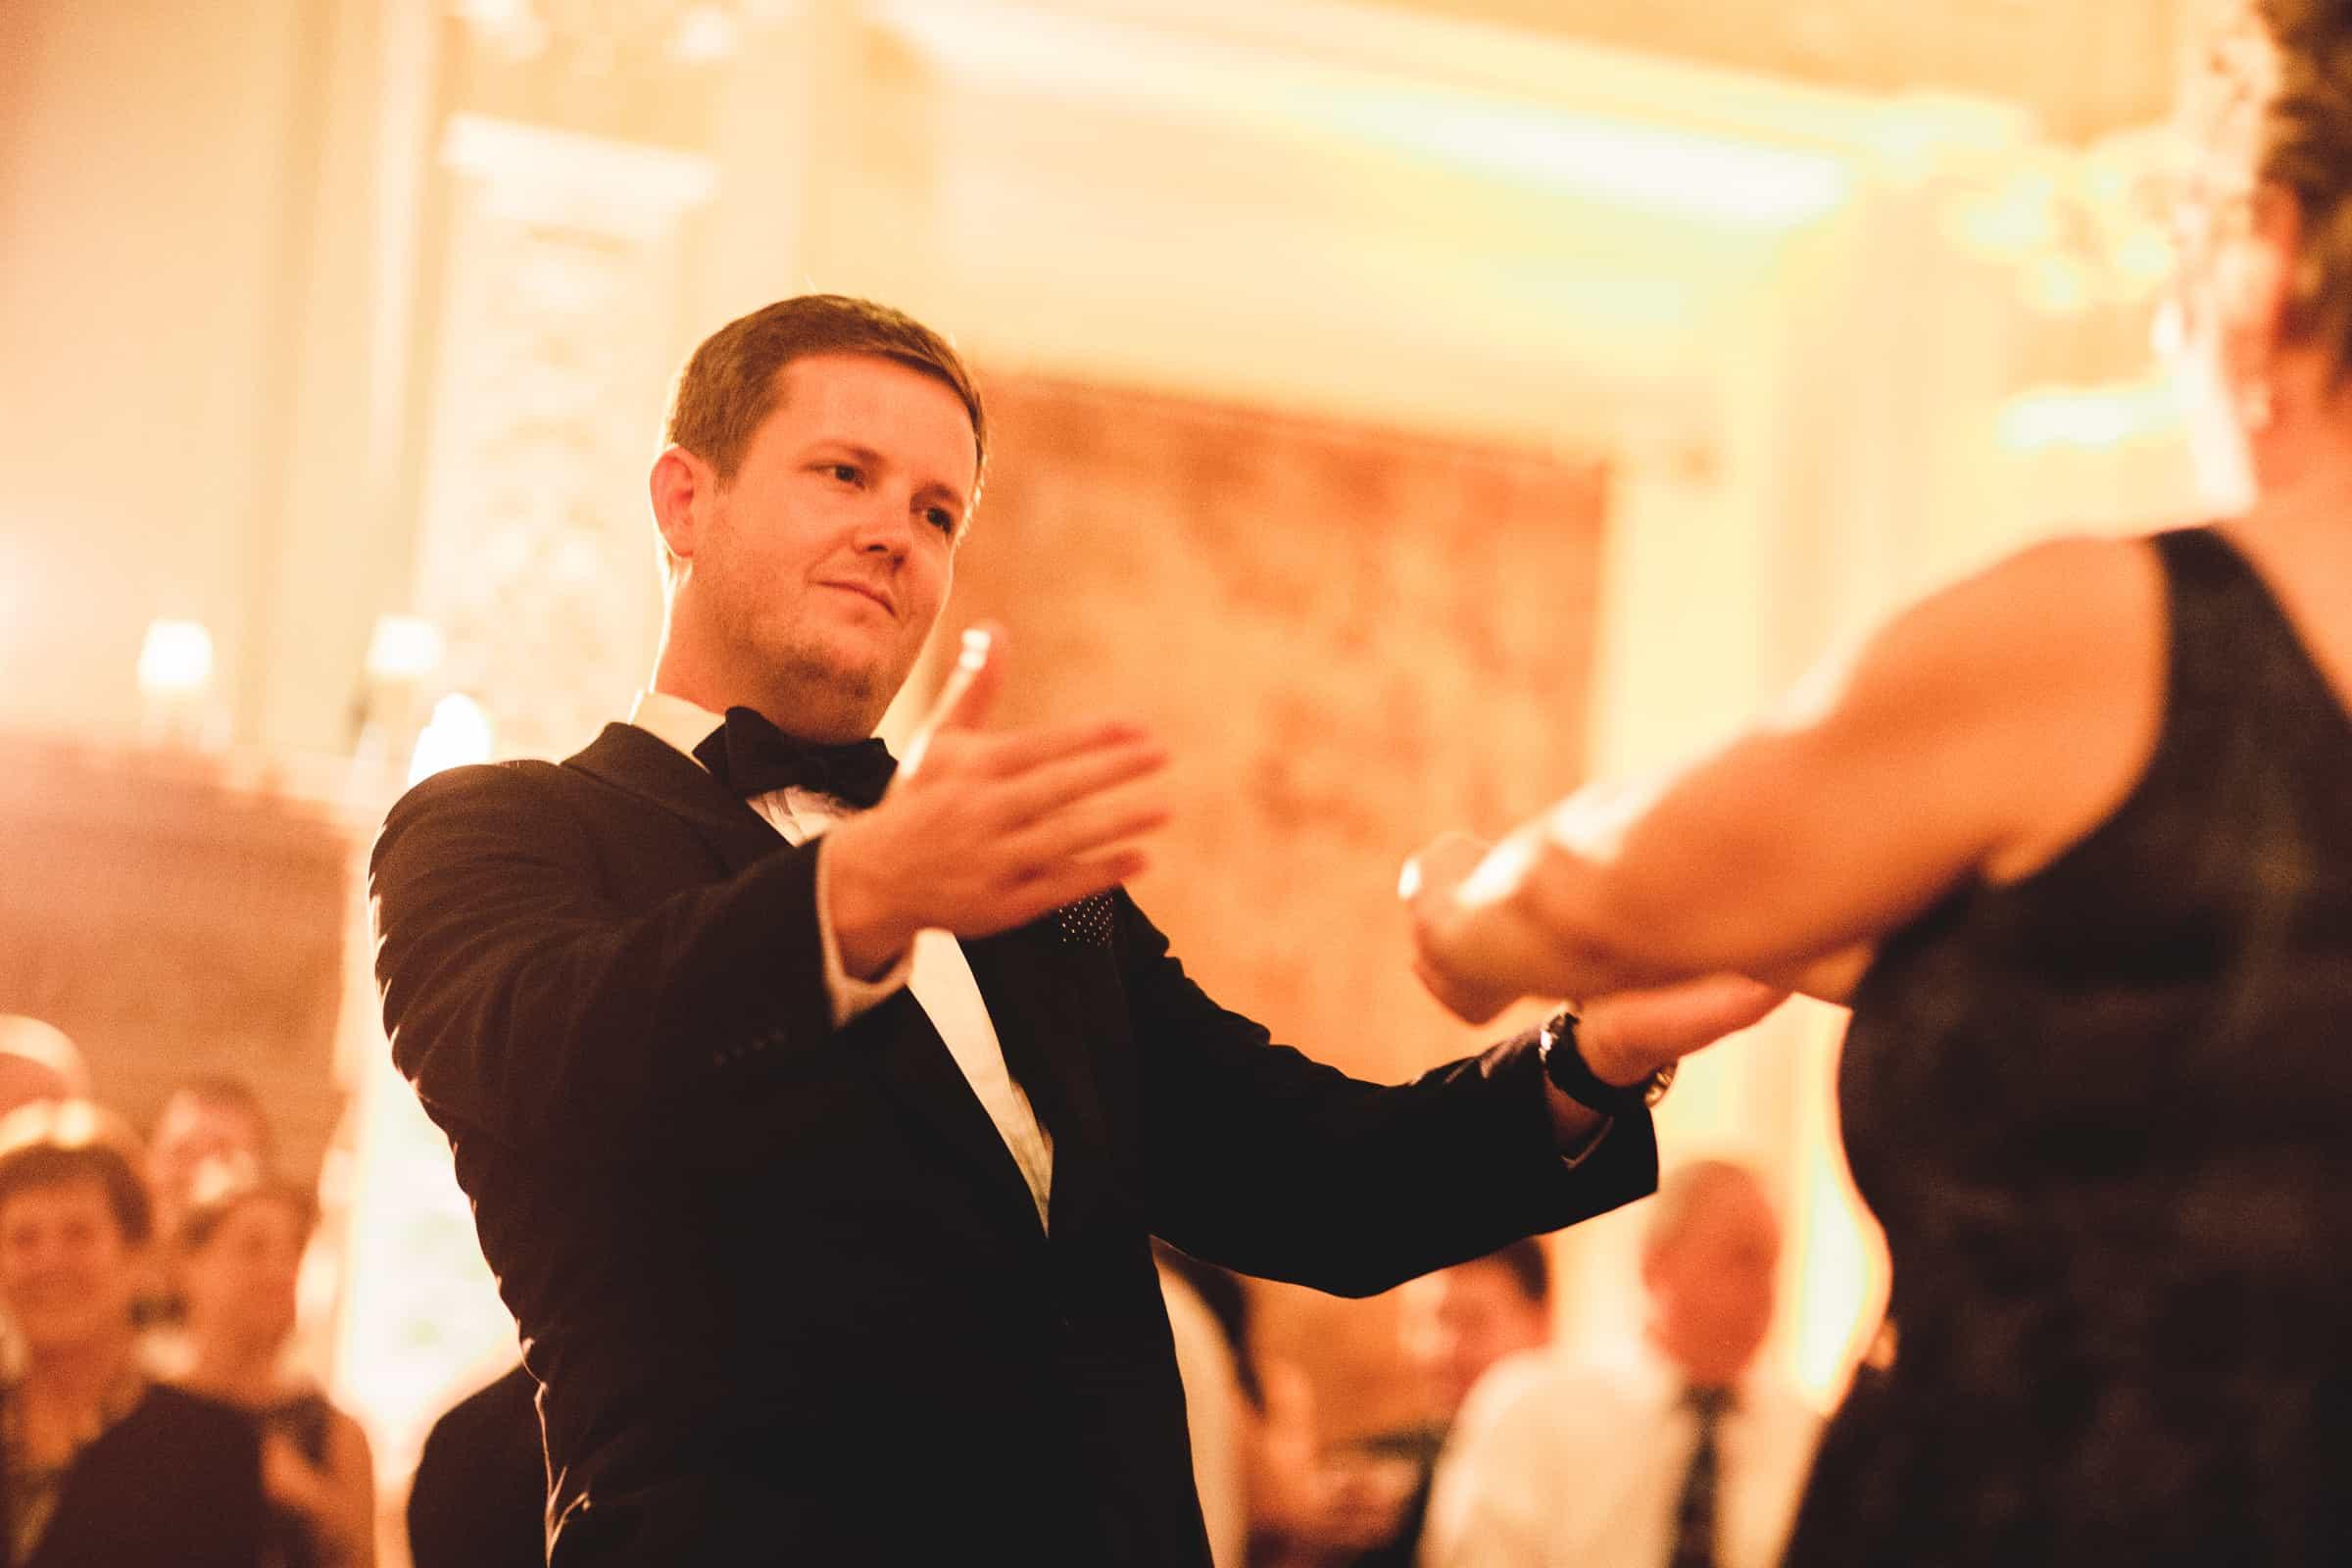 groom holding out arms